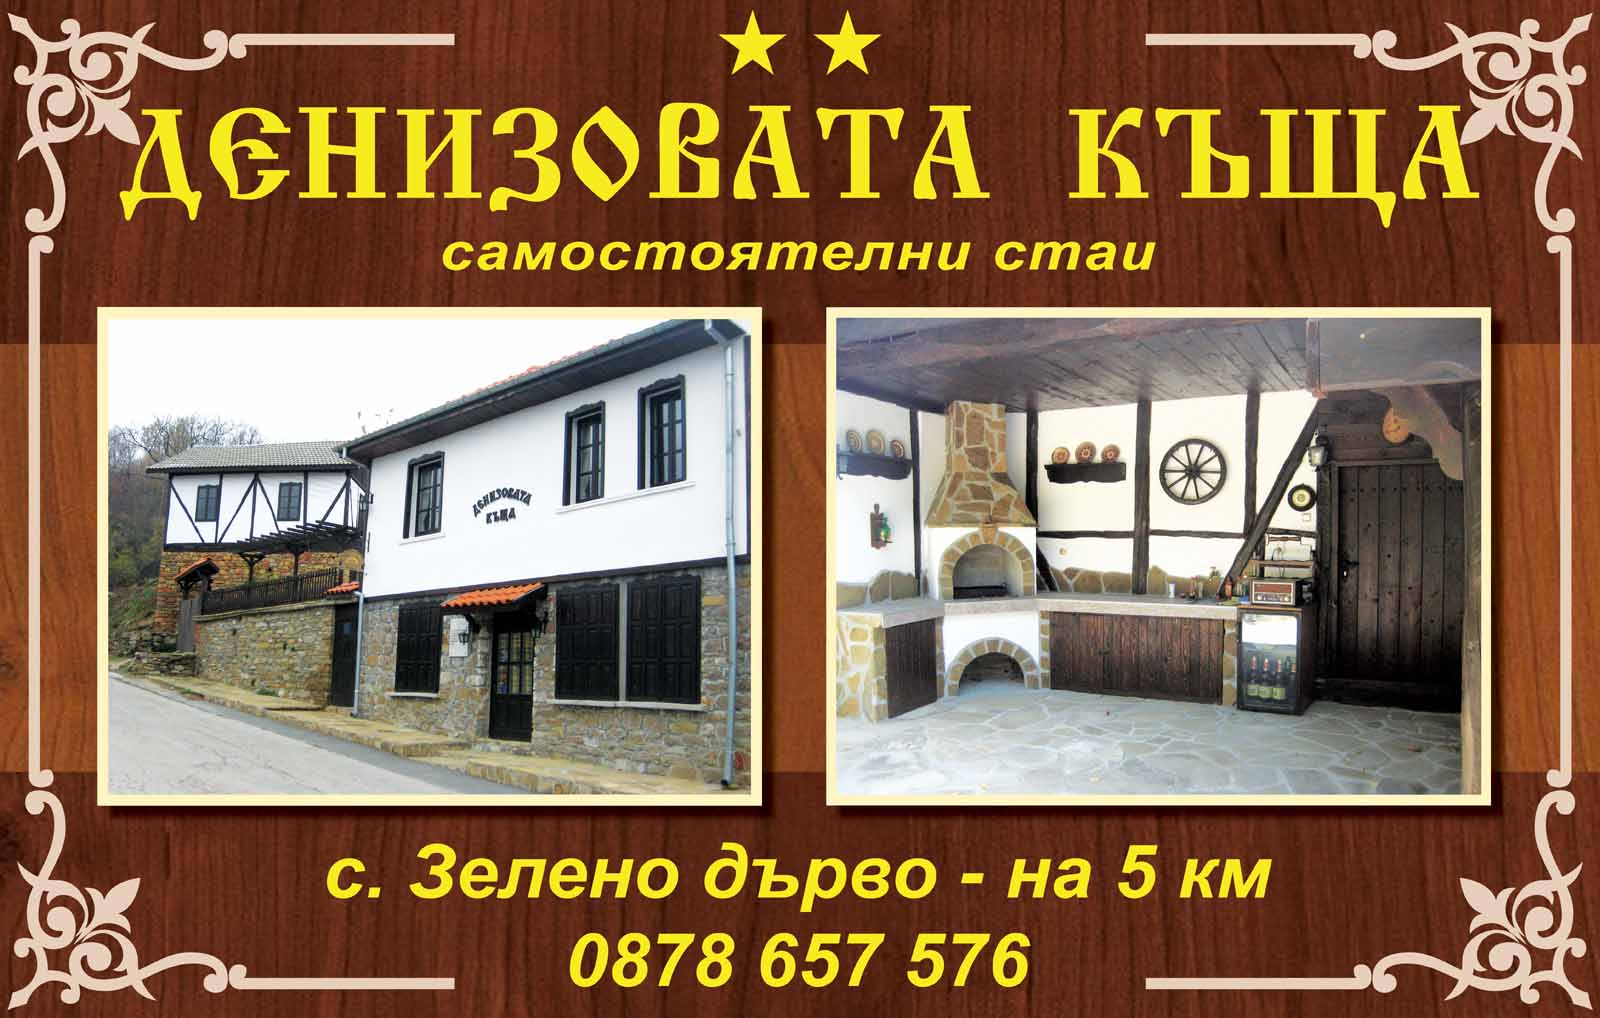 Lodging house Denizovata Kashta